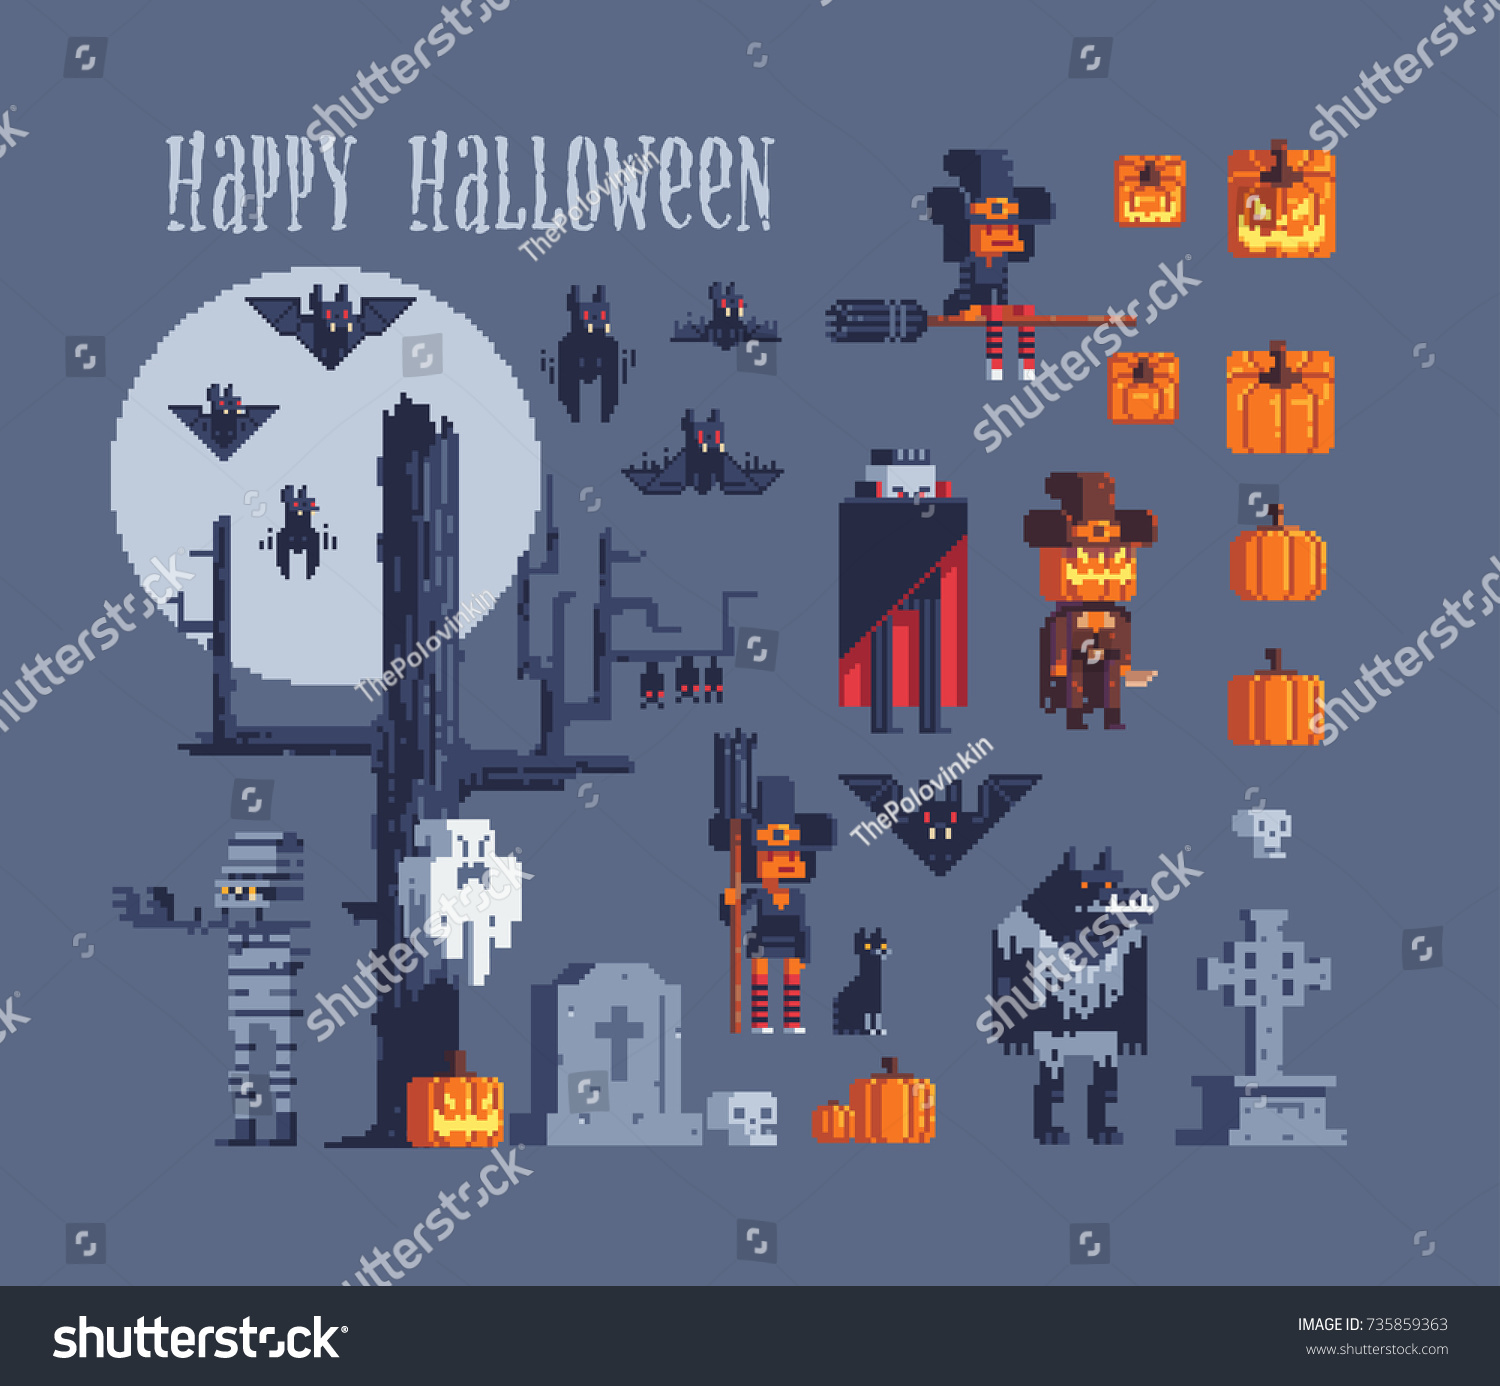 Halloween party characters icons set greeting stock vector halloween party characters icons set greeting stock vector 735859363 shutterstock kristyandbryce Choice Image